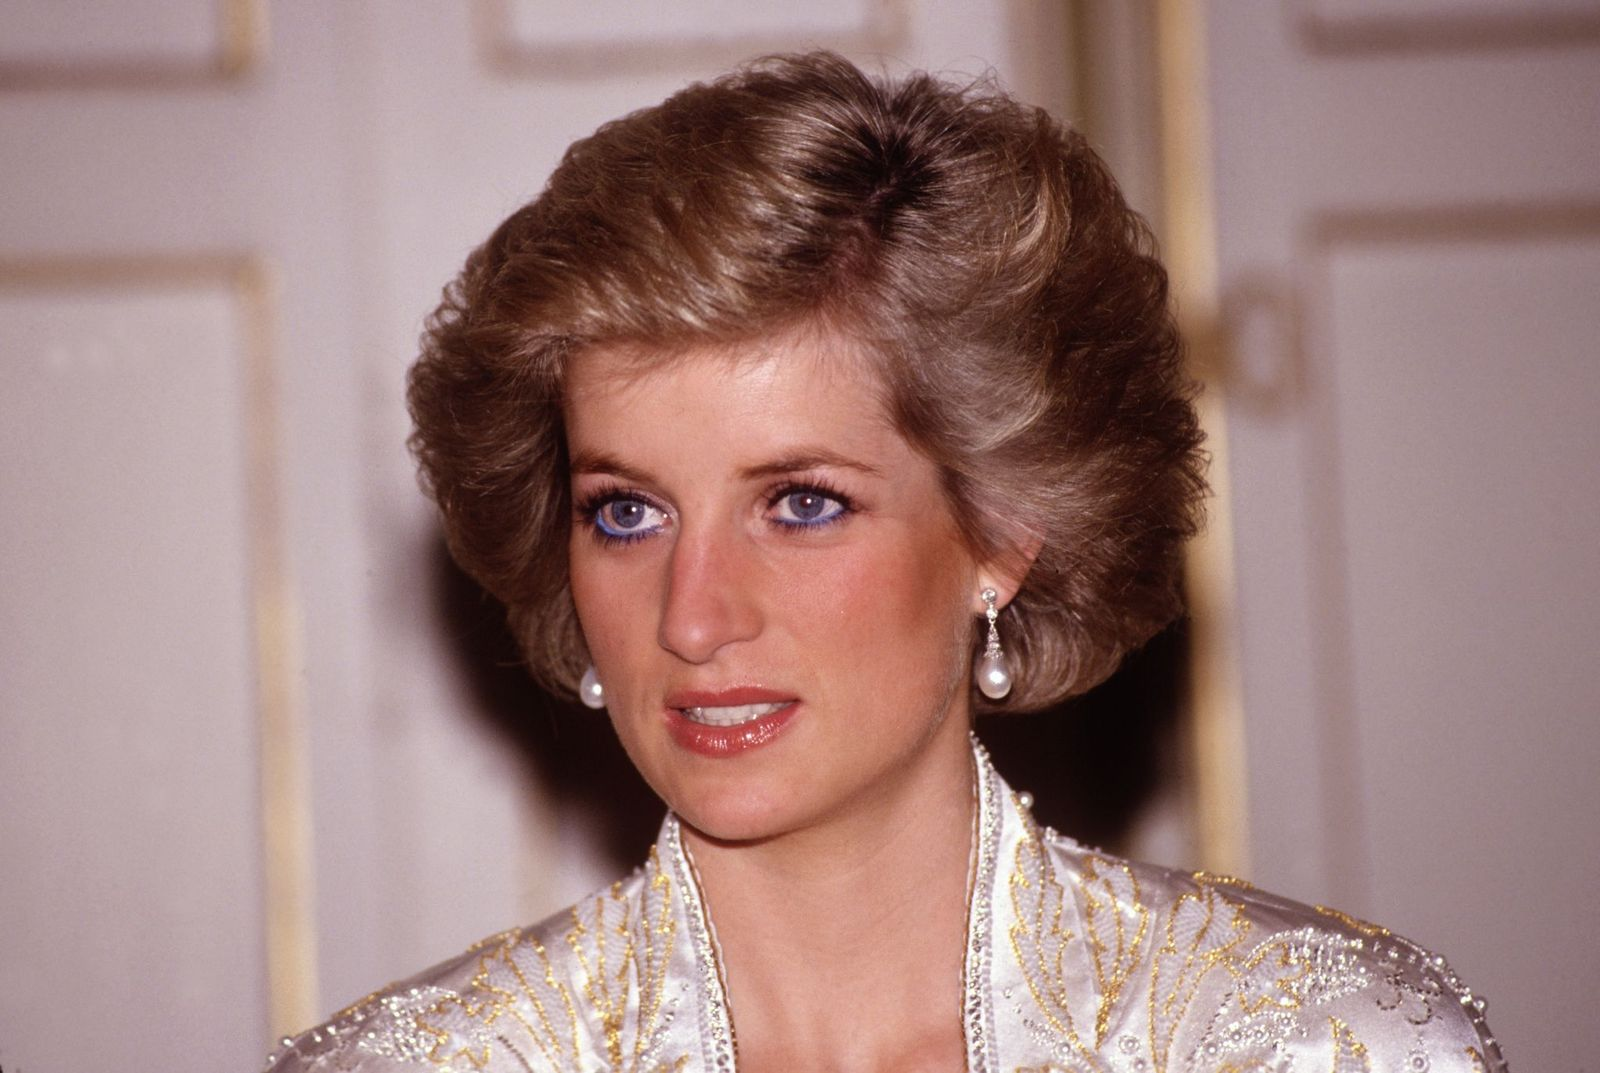 Princess Diana at a dinner given by President Mitterand in November 1988 at the Elysee Palace in Paris, France during the Royal Tour of France | Photo:David Levenson/Getty Images